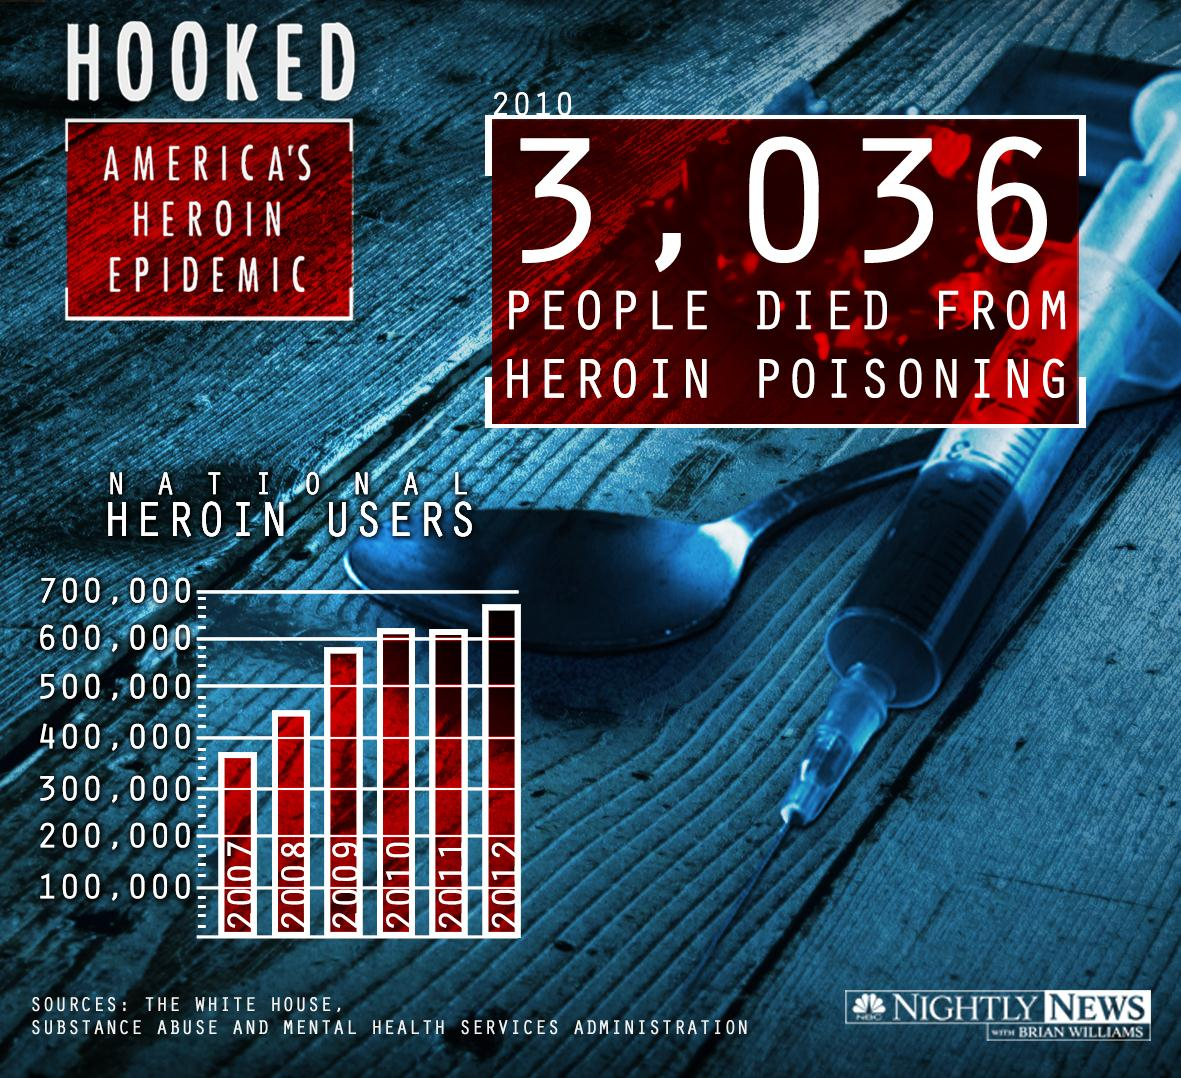 Heroin use is rising in America.  Attorney General Eric Holder recently called heroin use in this country an